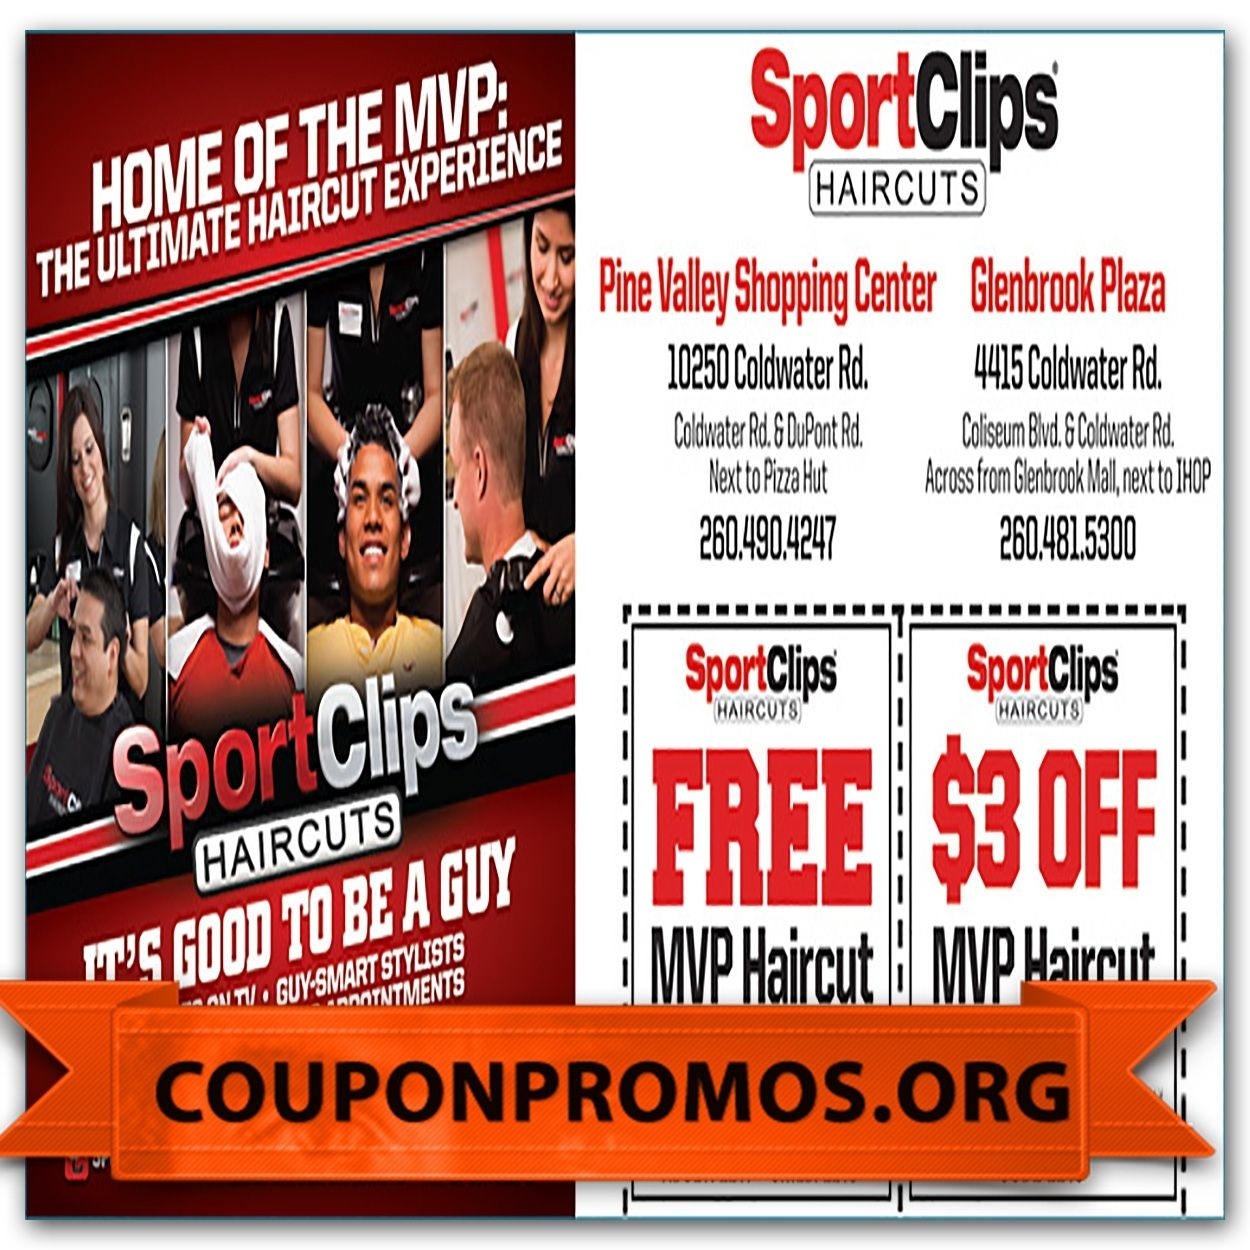 Sports Clips Haircut Coupons Sport Clips Printable Coupons - Sports Clips Free Haircut Printable Coupon